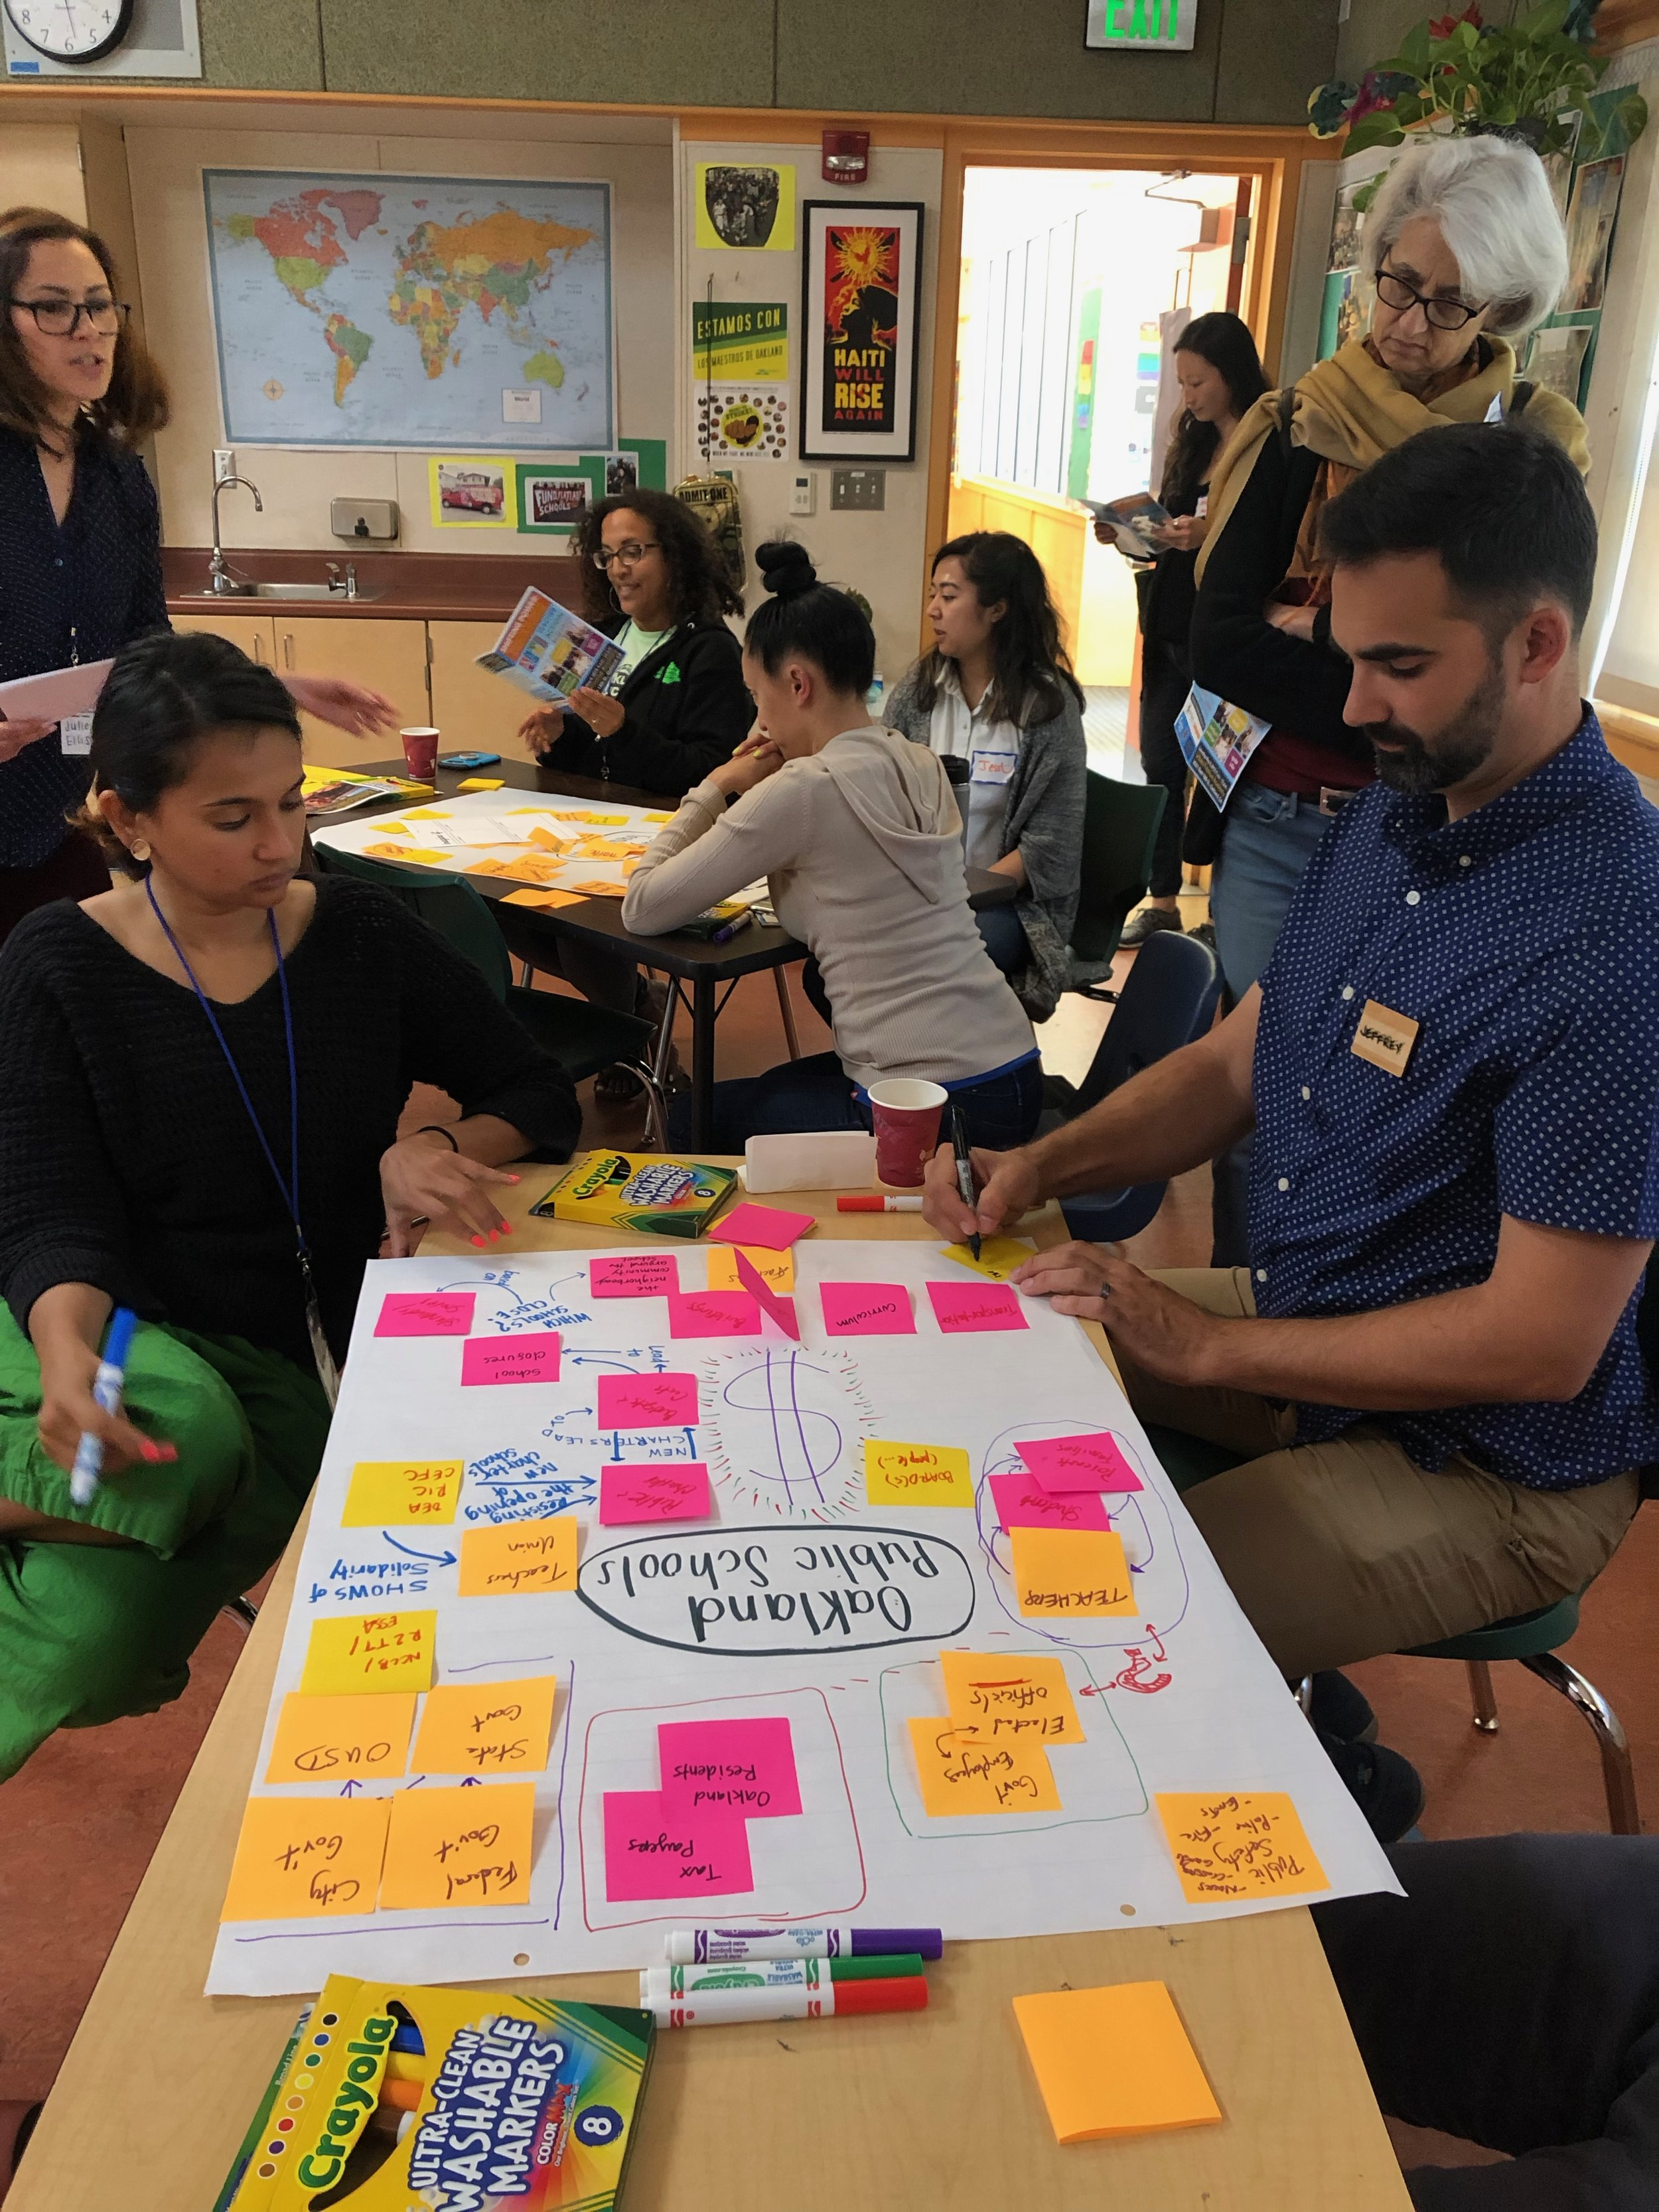 "In her workshop entitled ""Shifting the Cognitive Load with Systems Thinking,"" Julie Ellis asks participants explore how systems thinking protocols can be infused with social studies standards to engage in deeper learning."